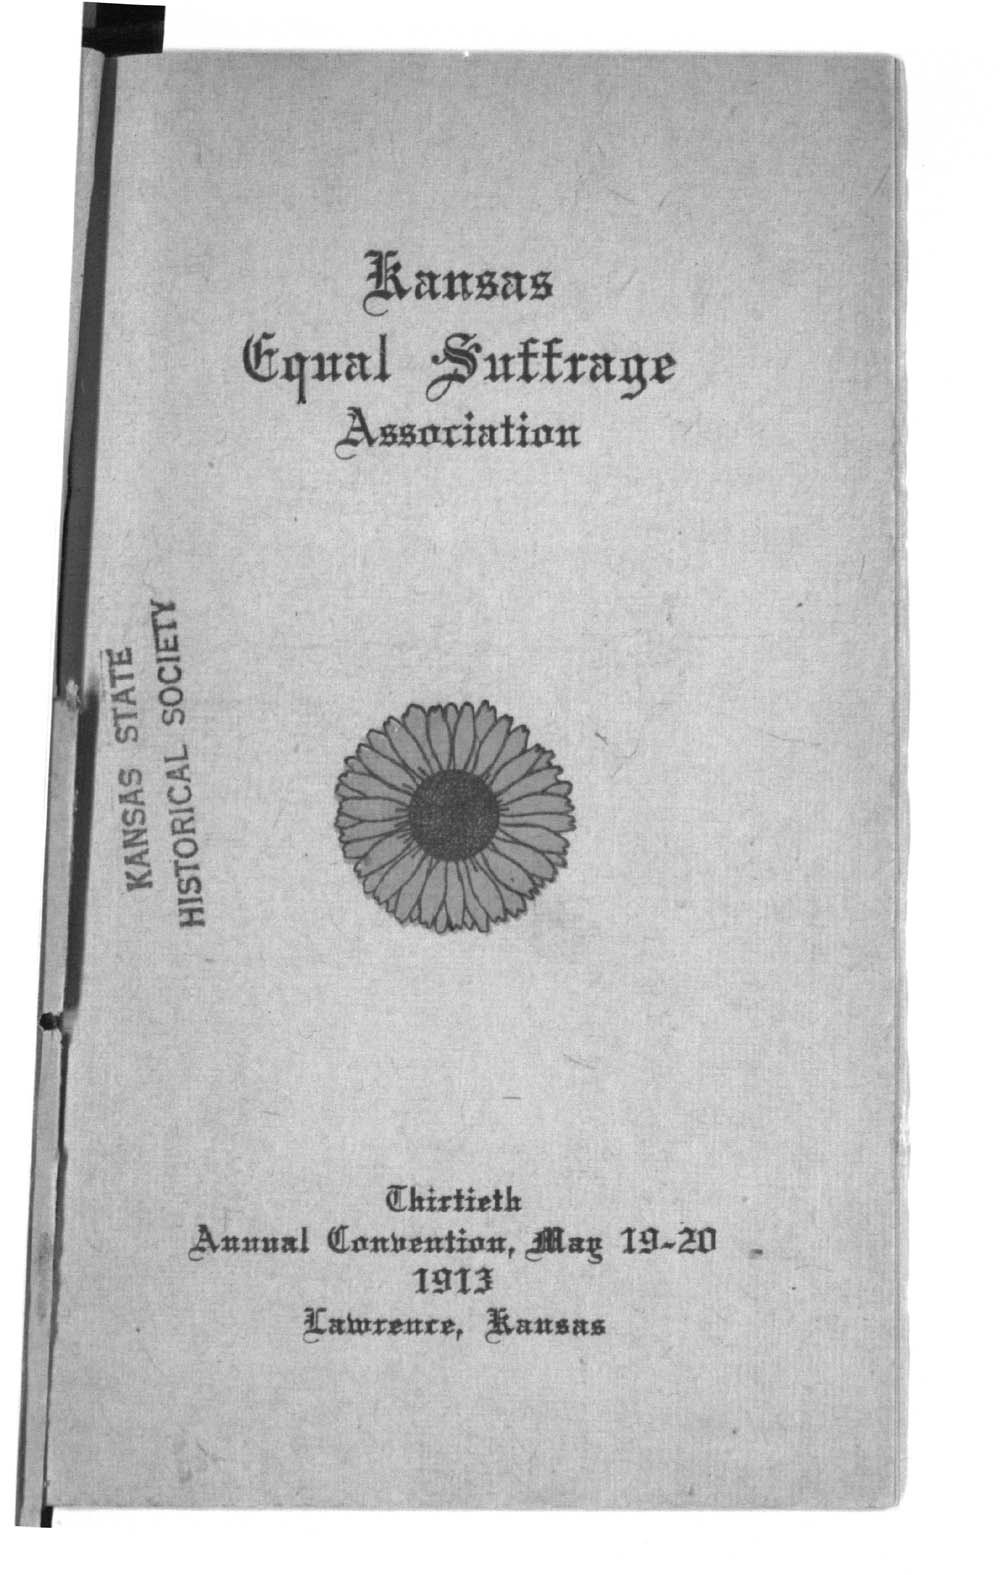 Kansas Equal Suffrage Association thirtieth annual convention - 1